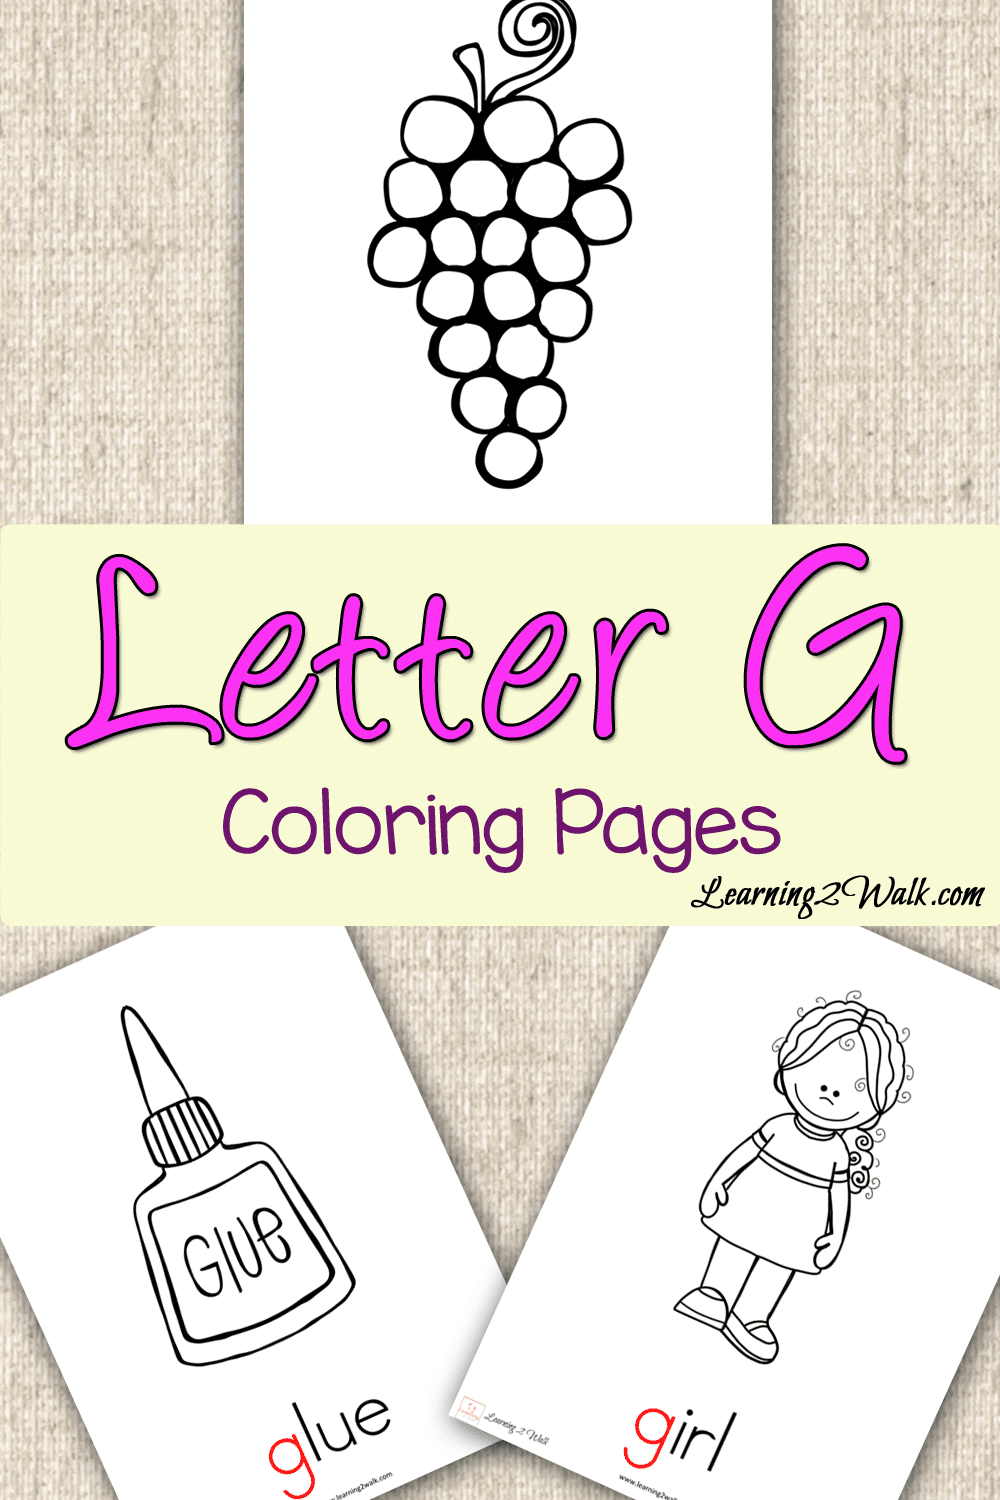 Preschool Letter Activities: Letter G Coloring Pages